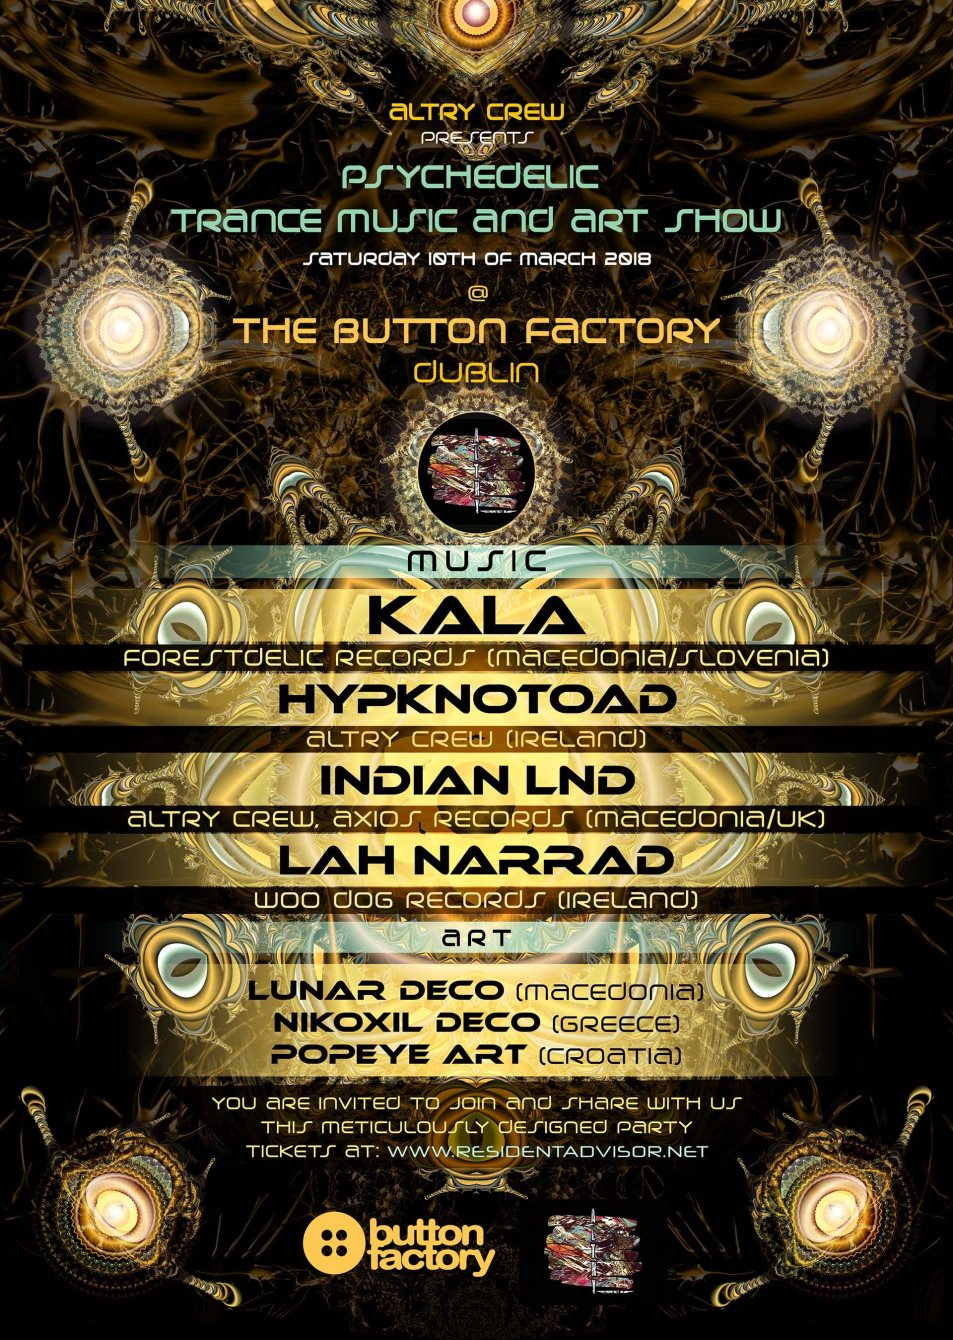 Psychedelic Trance Music and Art Show - Flyer front